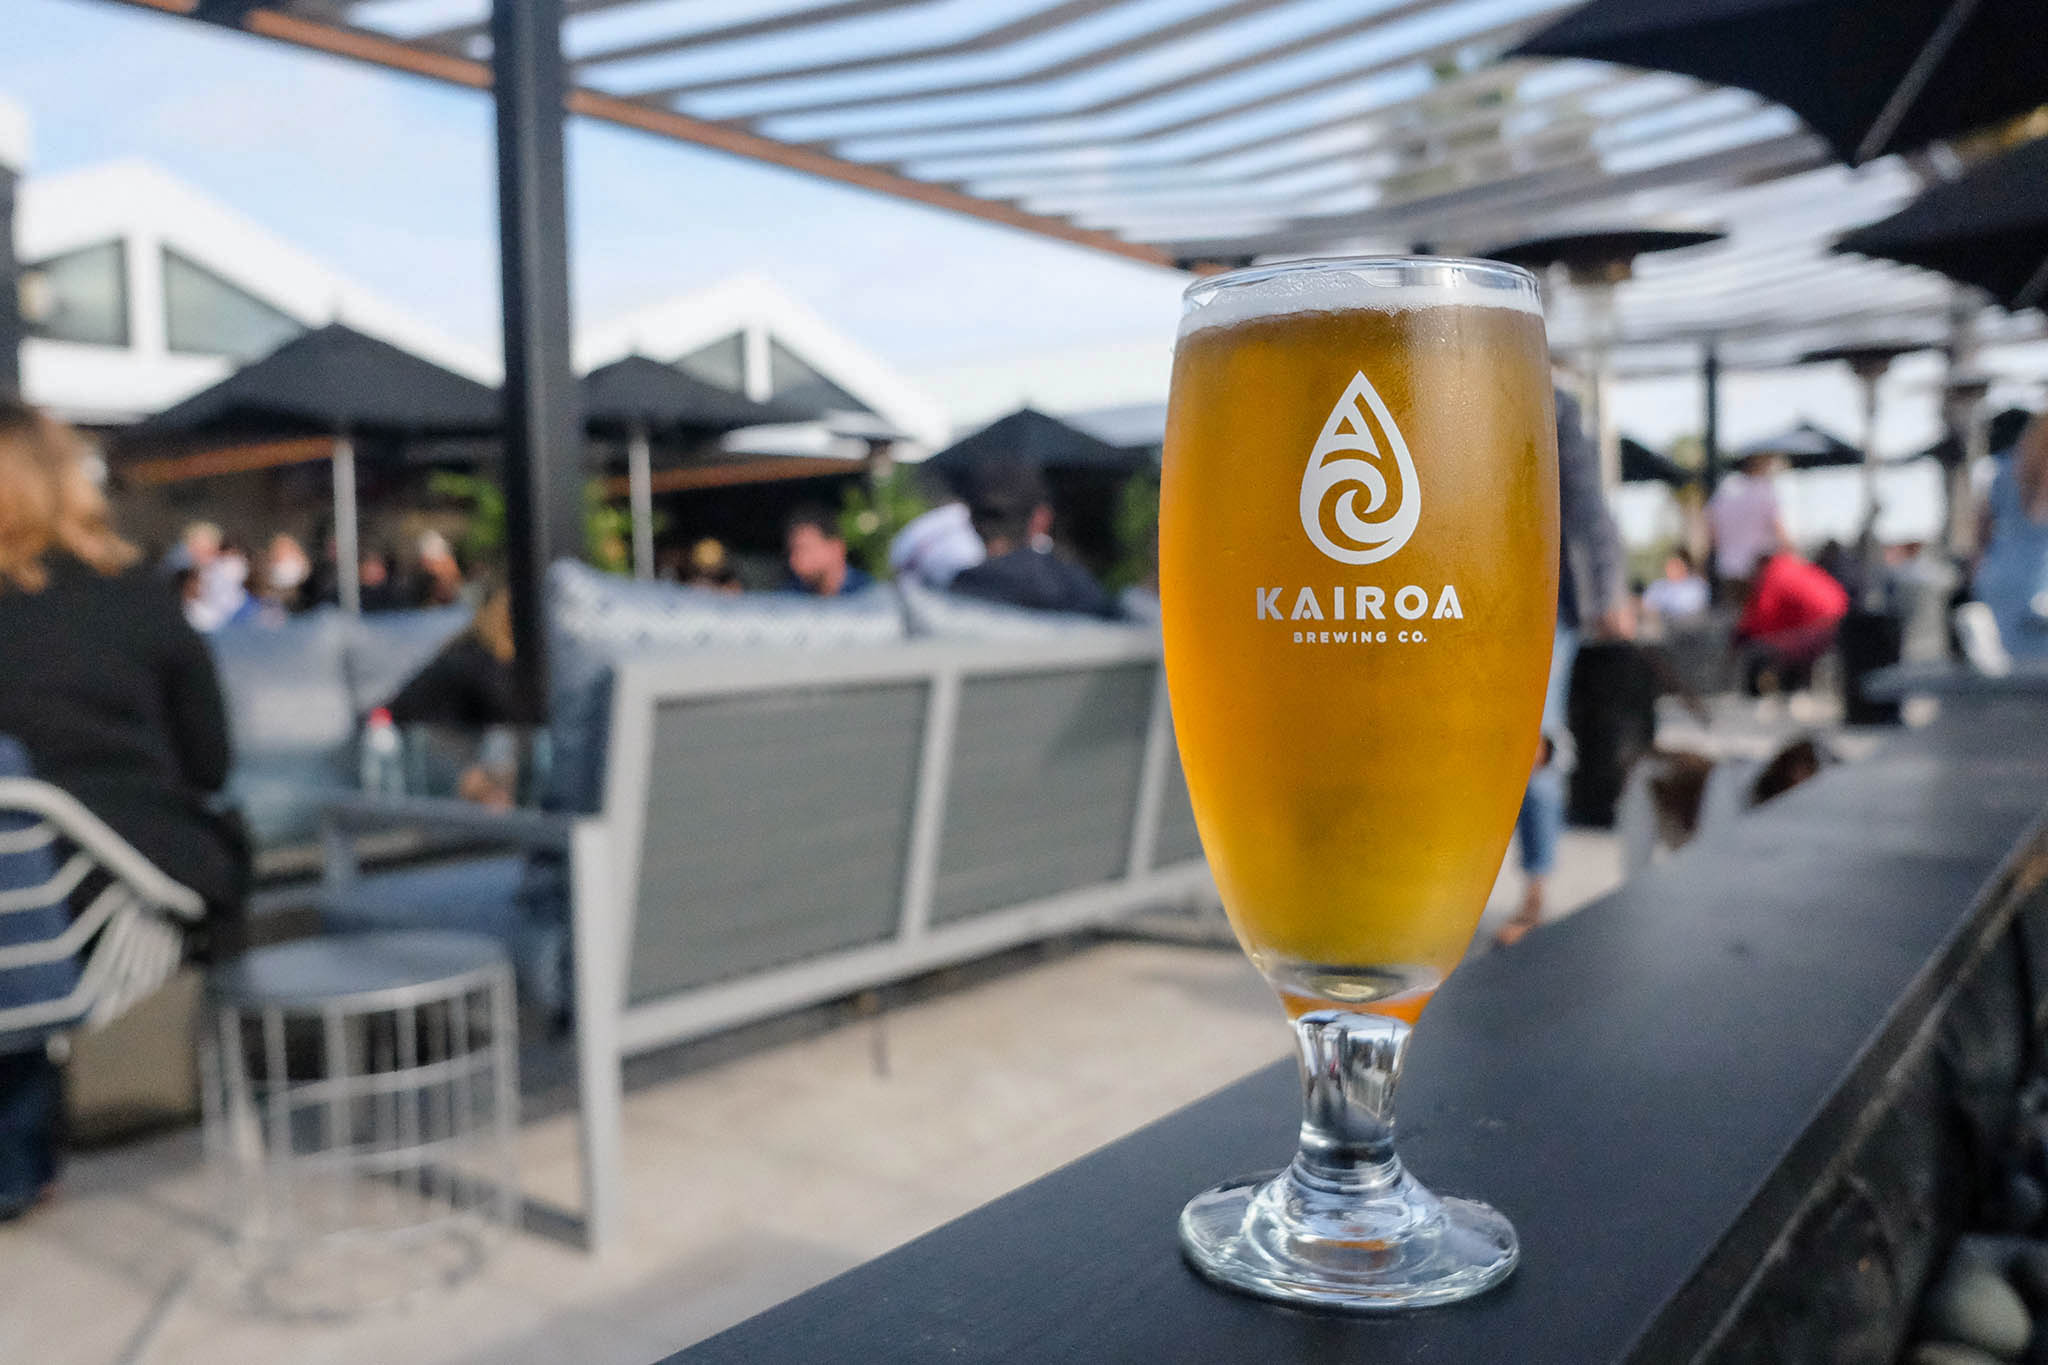 The Back Paddock New Zealand-style pilsner, made with New Zealand hops at Kairoa Brewing